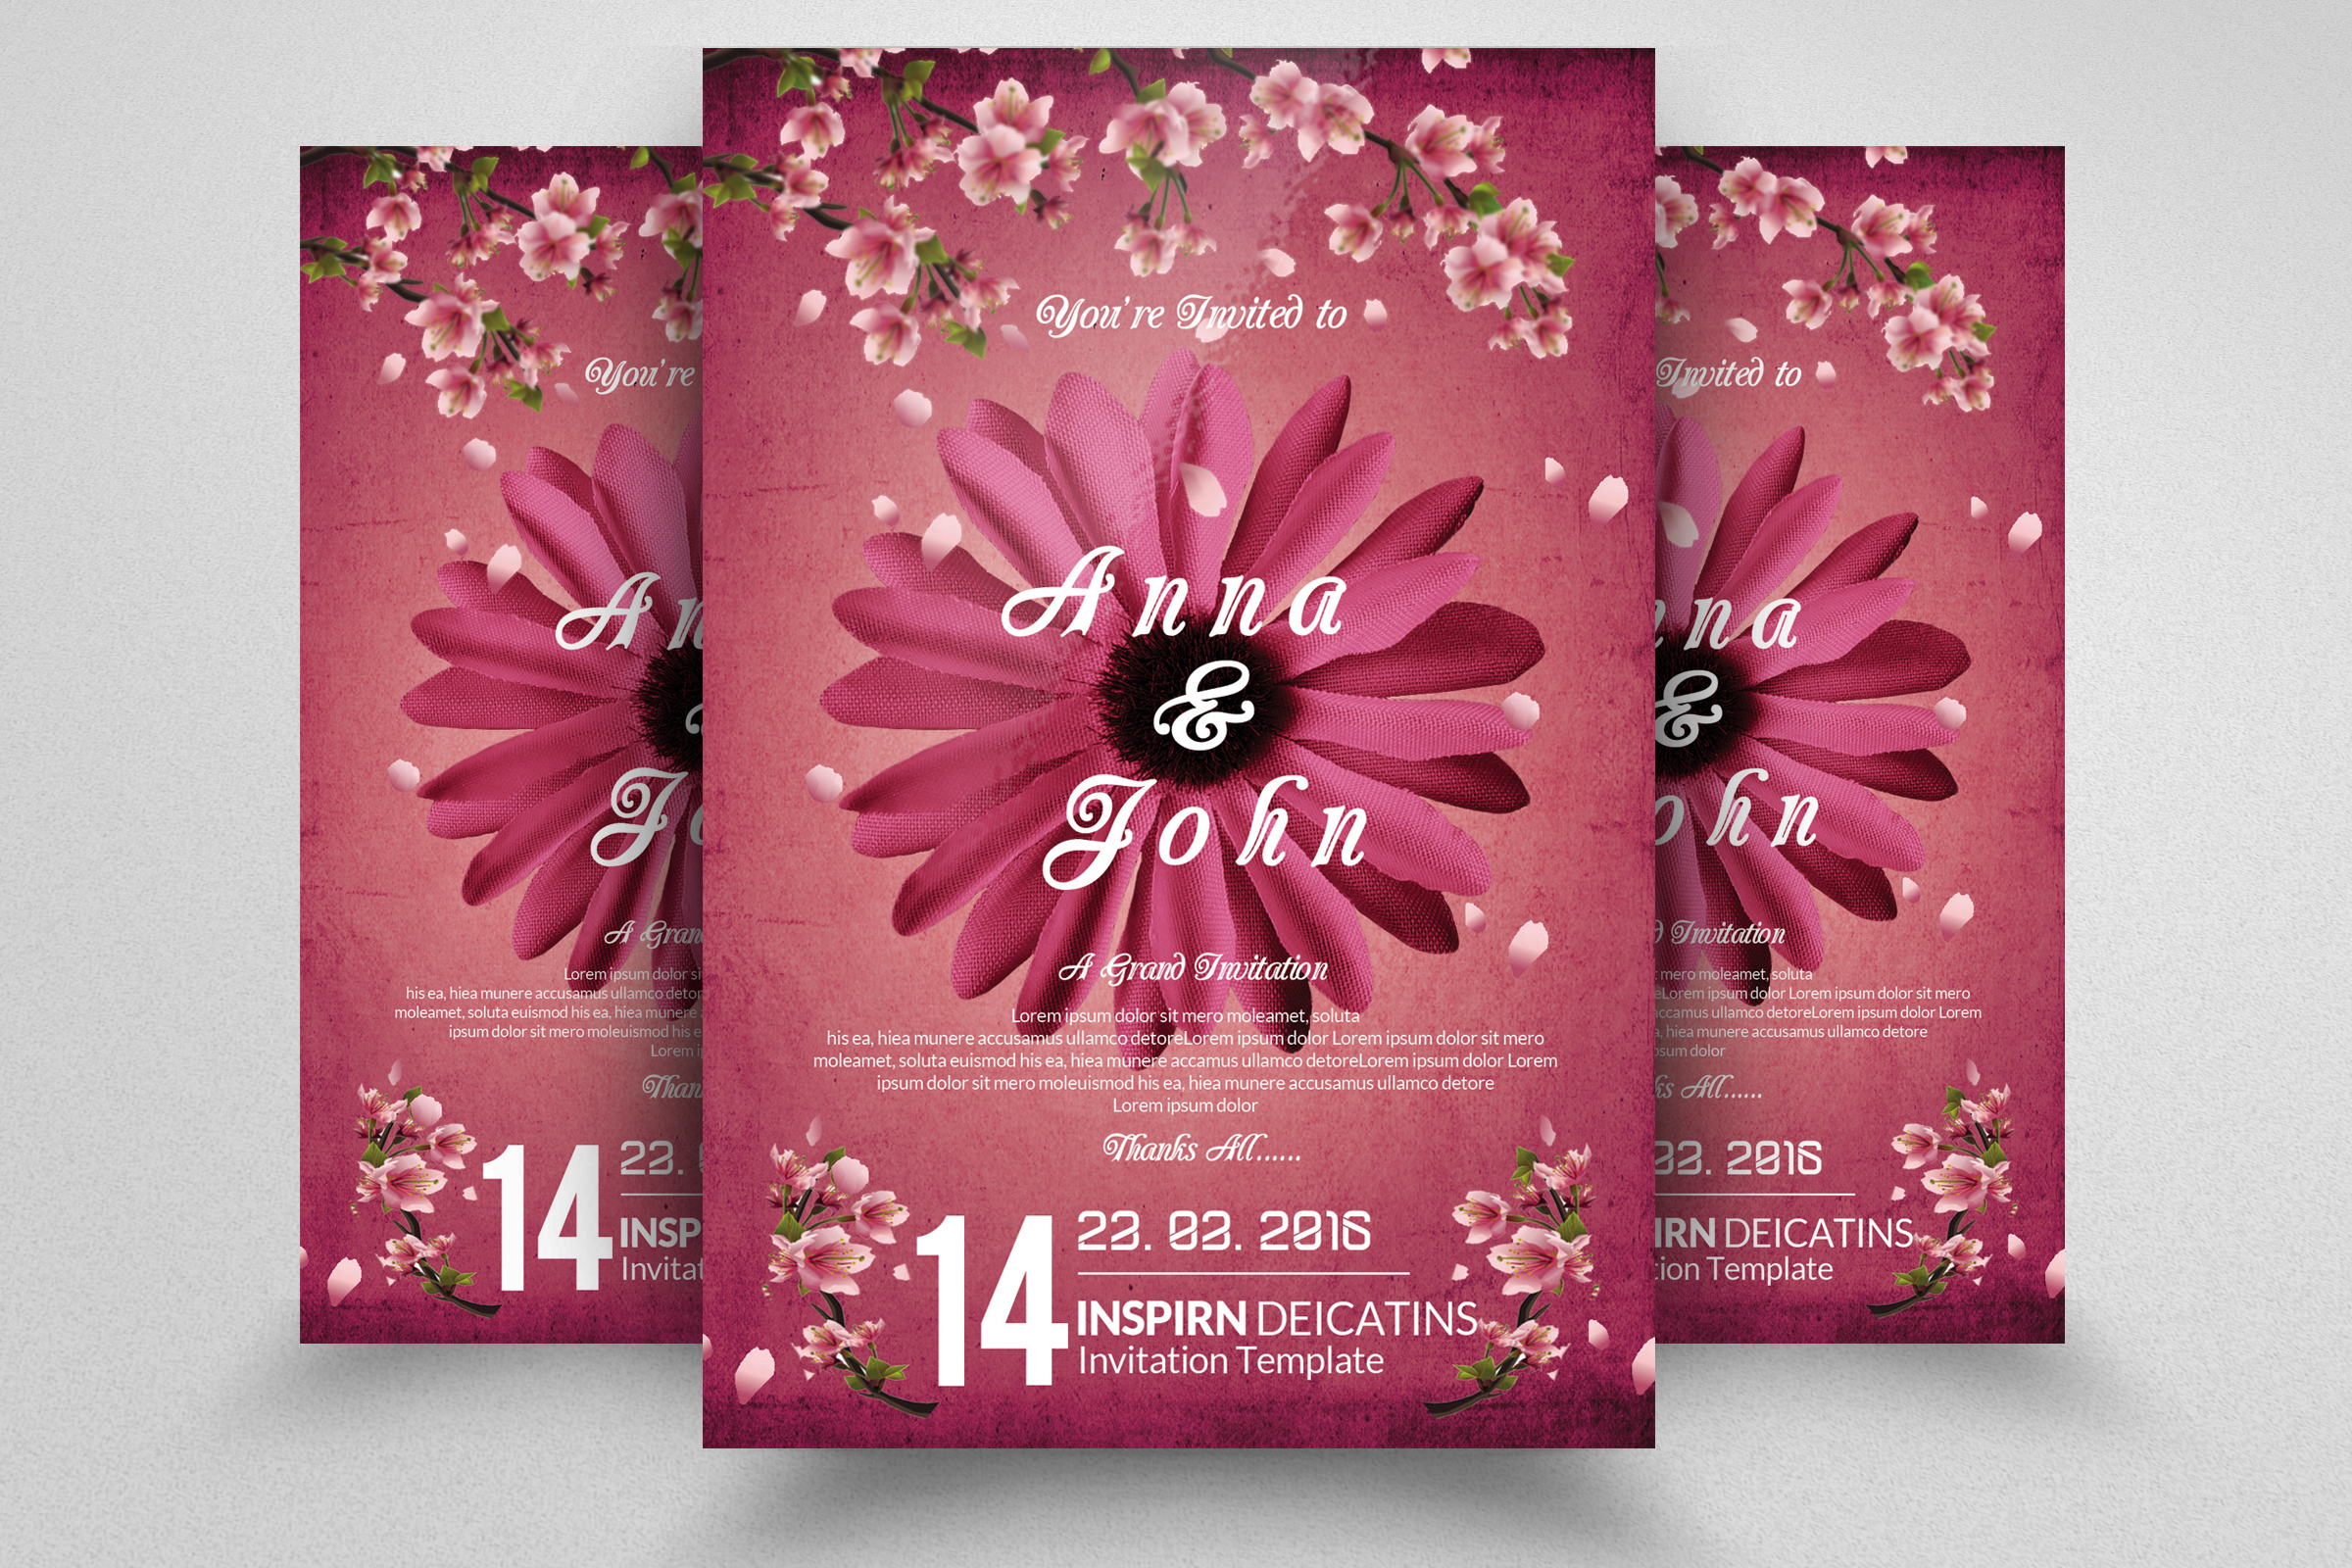 Floral Wedding Invitaion Flyer example image 1